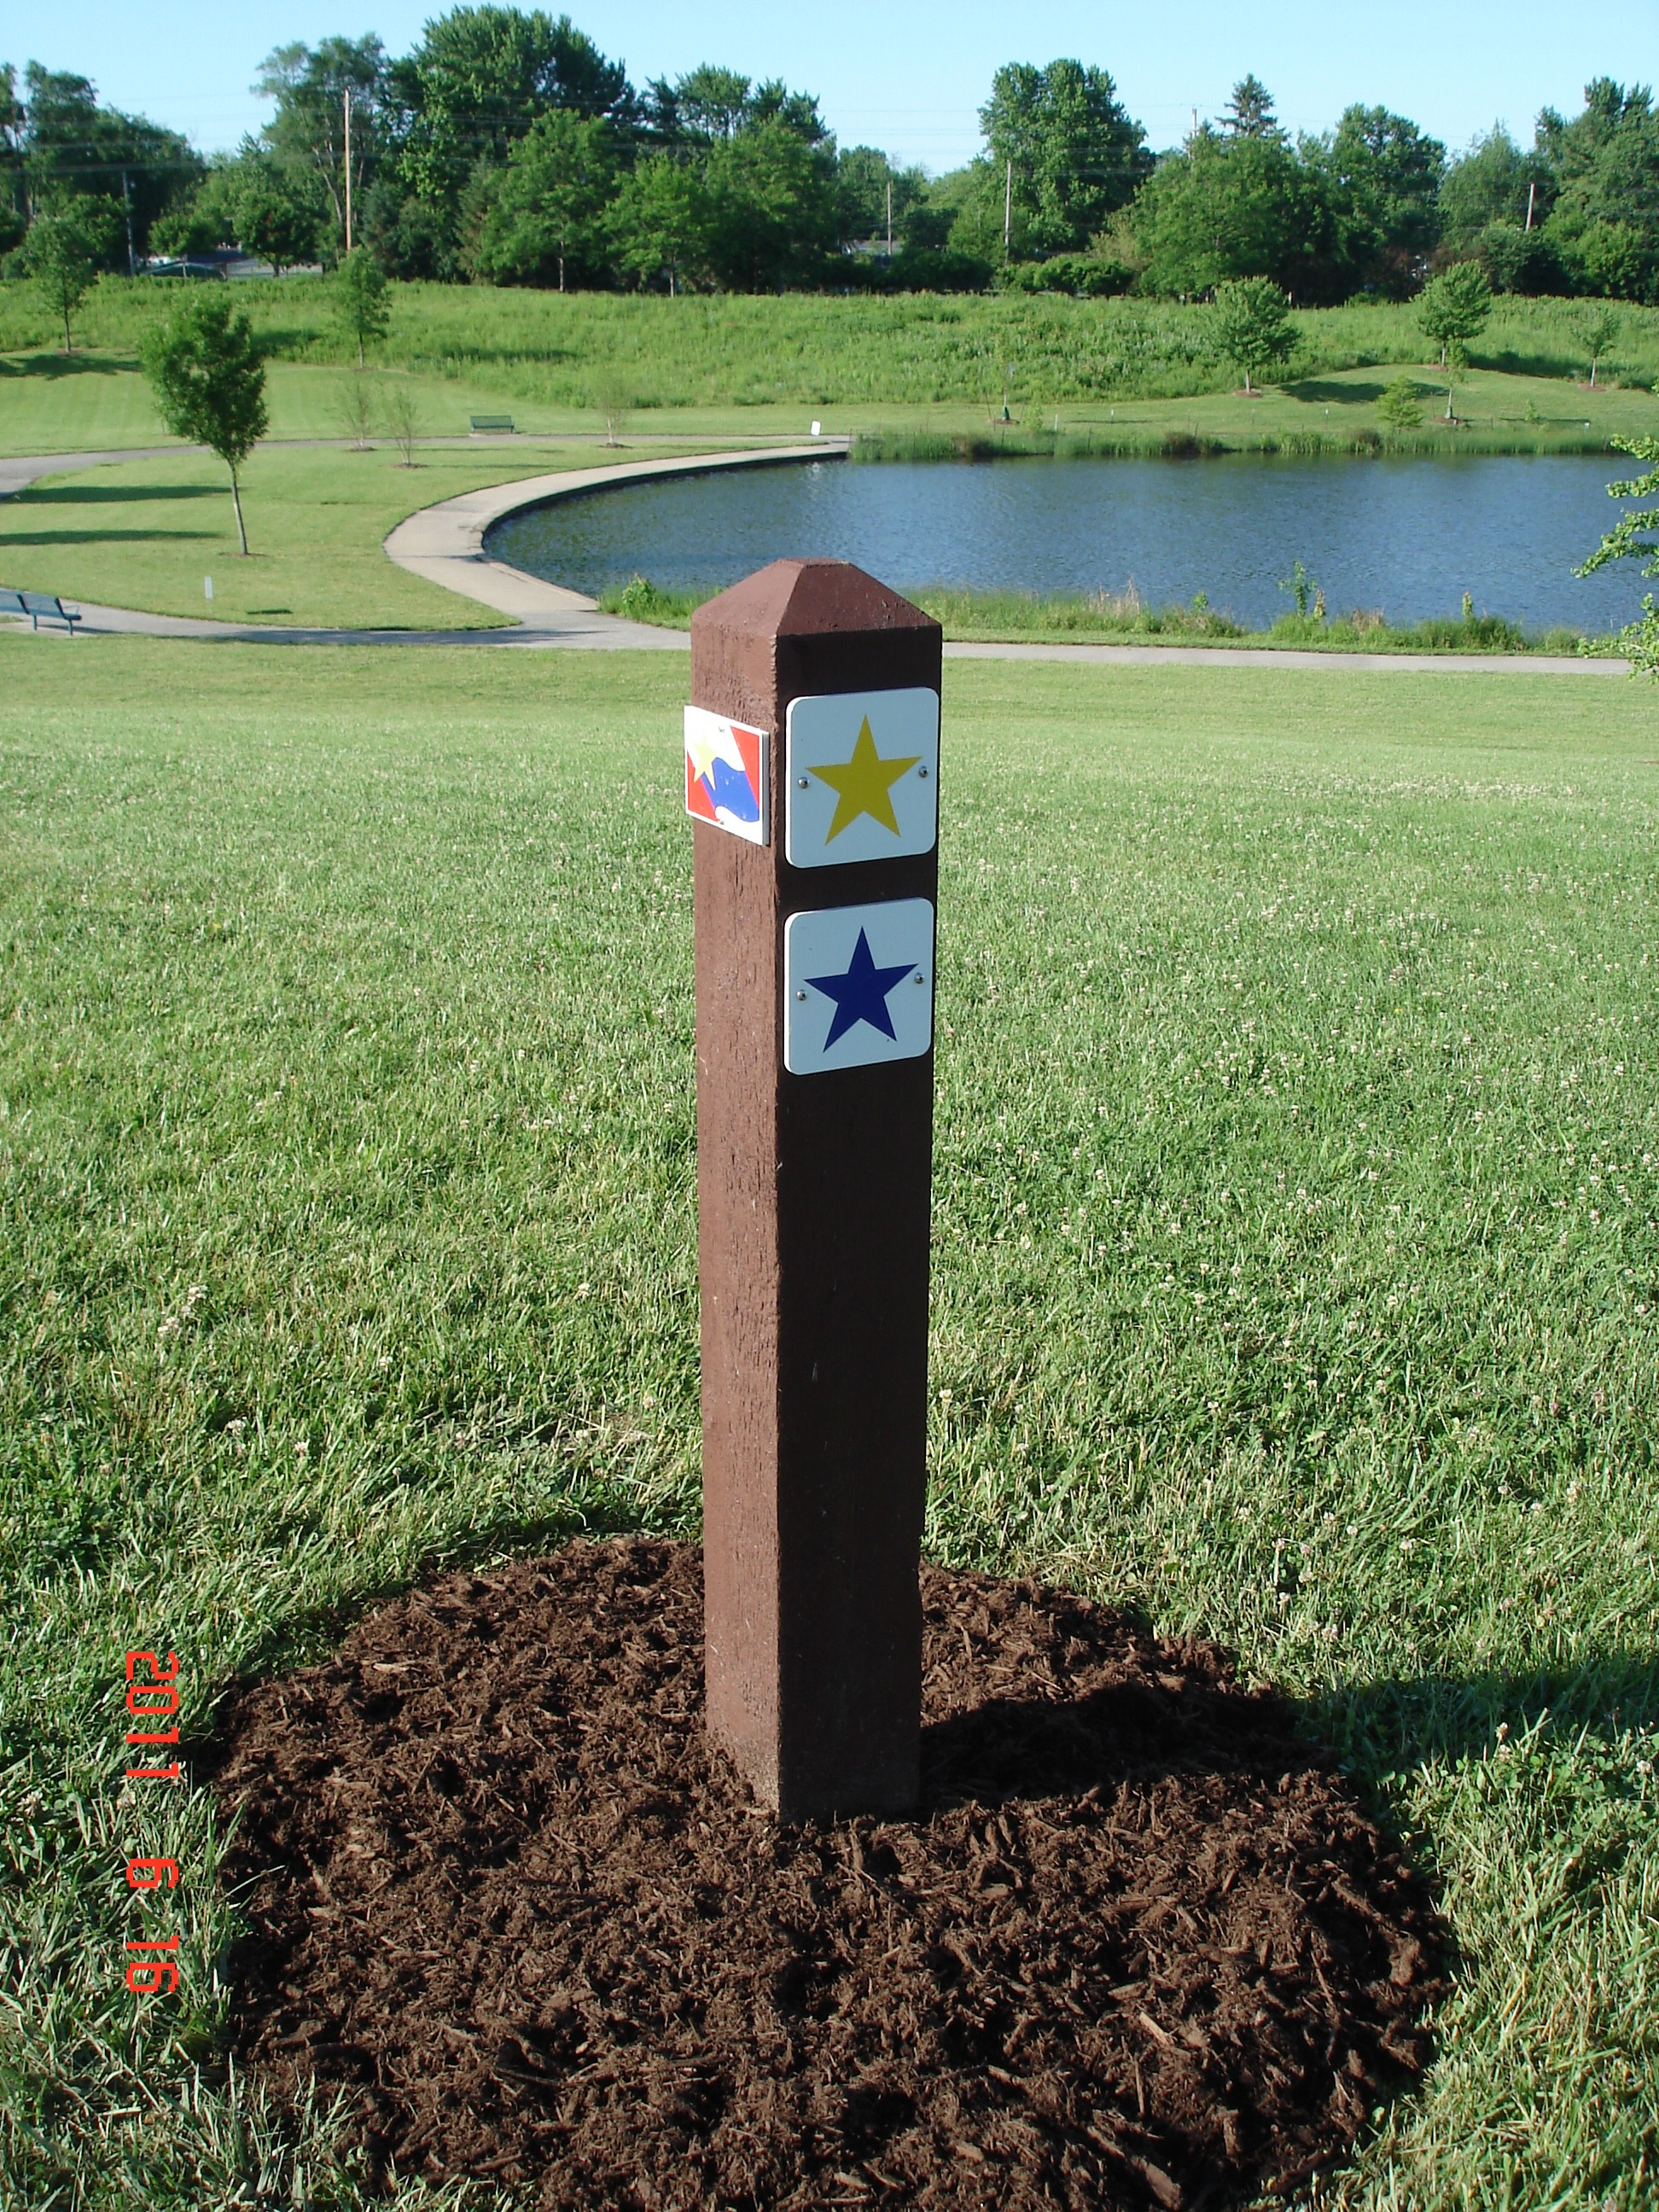 A wooden post with a yellow start and a blue star in the grass